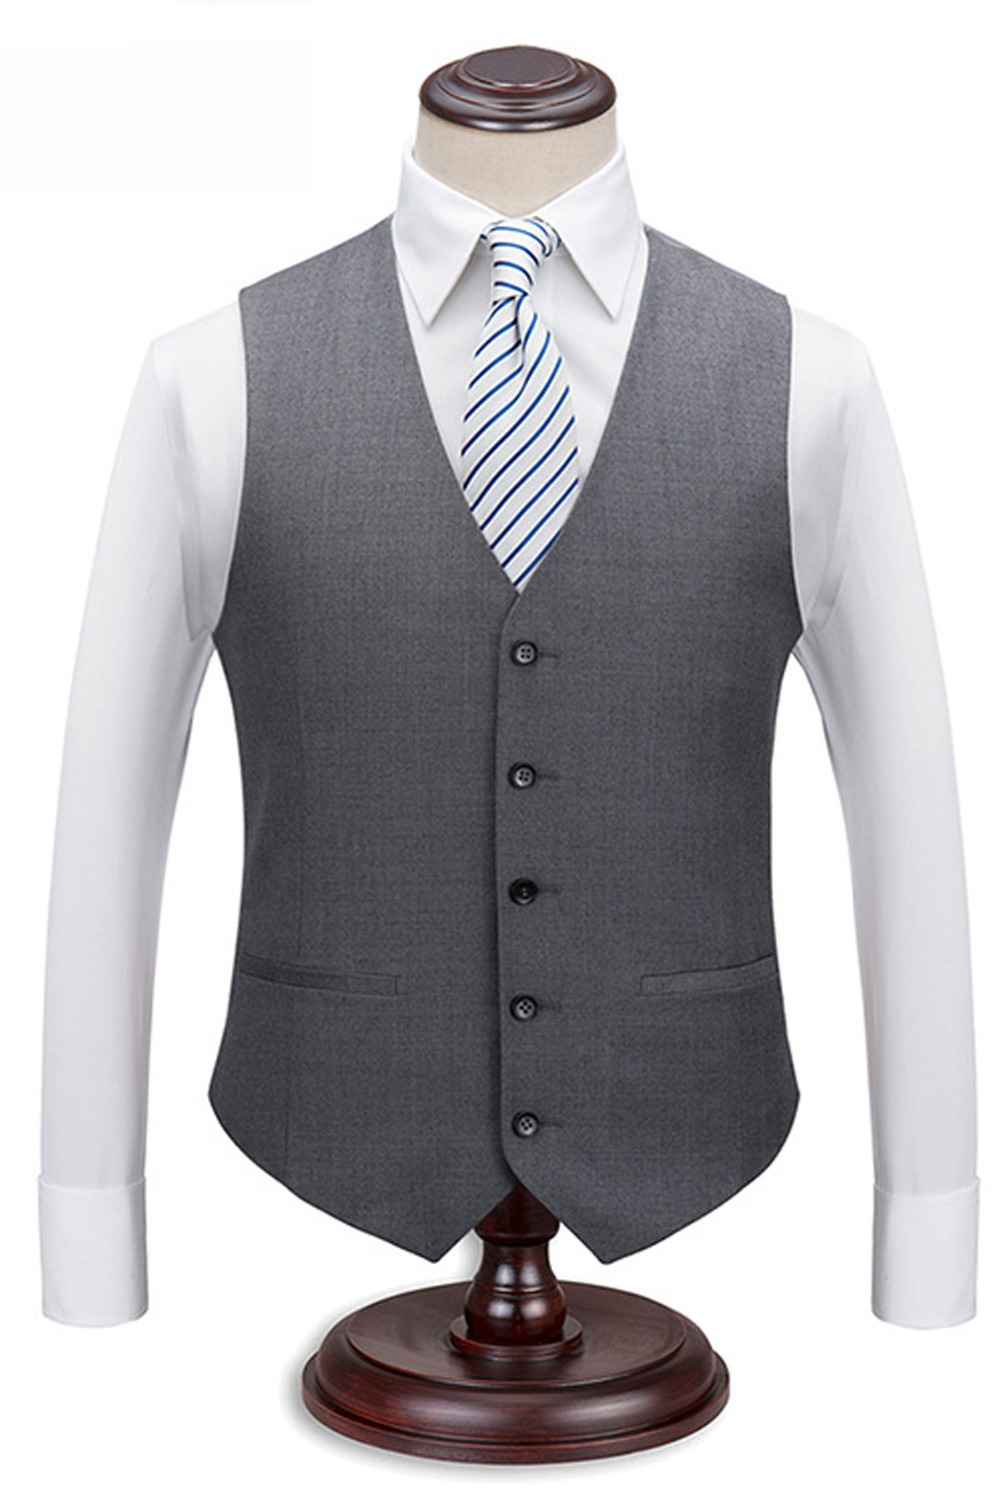 Waistcoat Mens Vest 5-Buttons New V-Neck Wool with Silk Back Single Top-Quality Gery